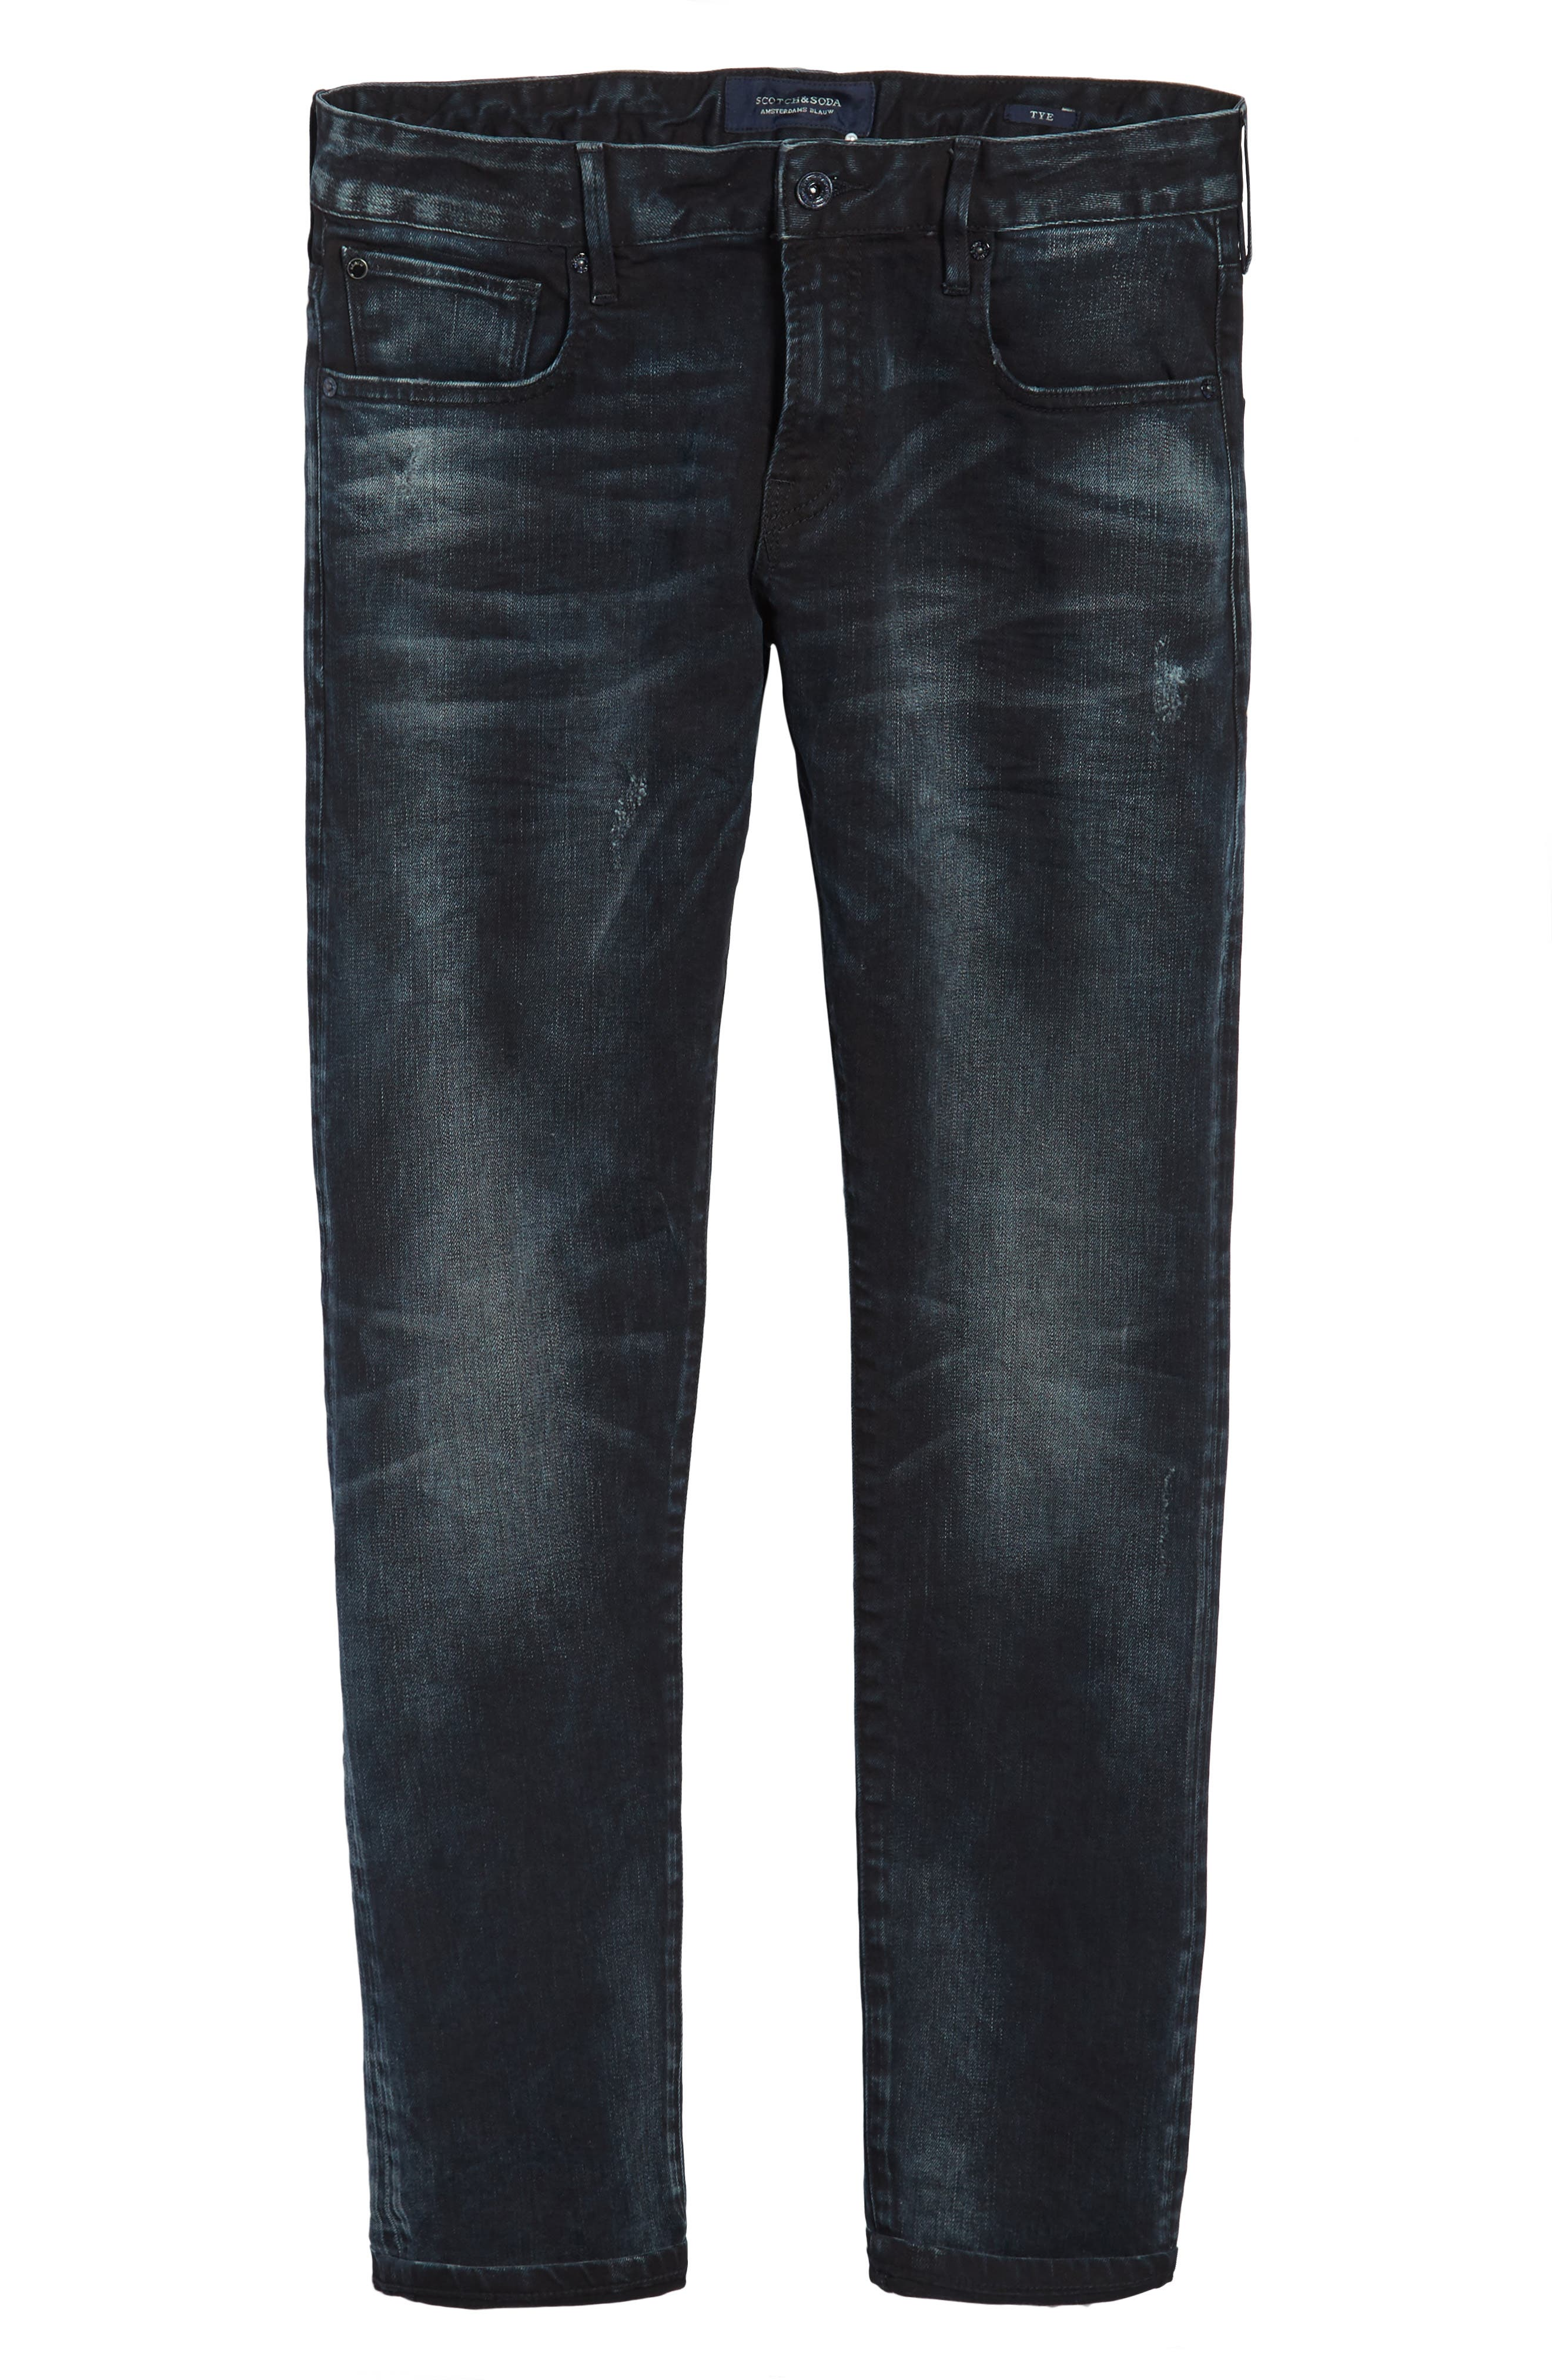 Tye Slim Fit Jeans,                             Alternate thumbnail 6, color,                             Sander